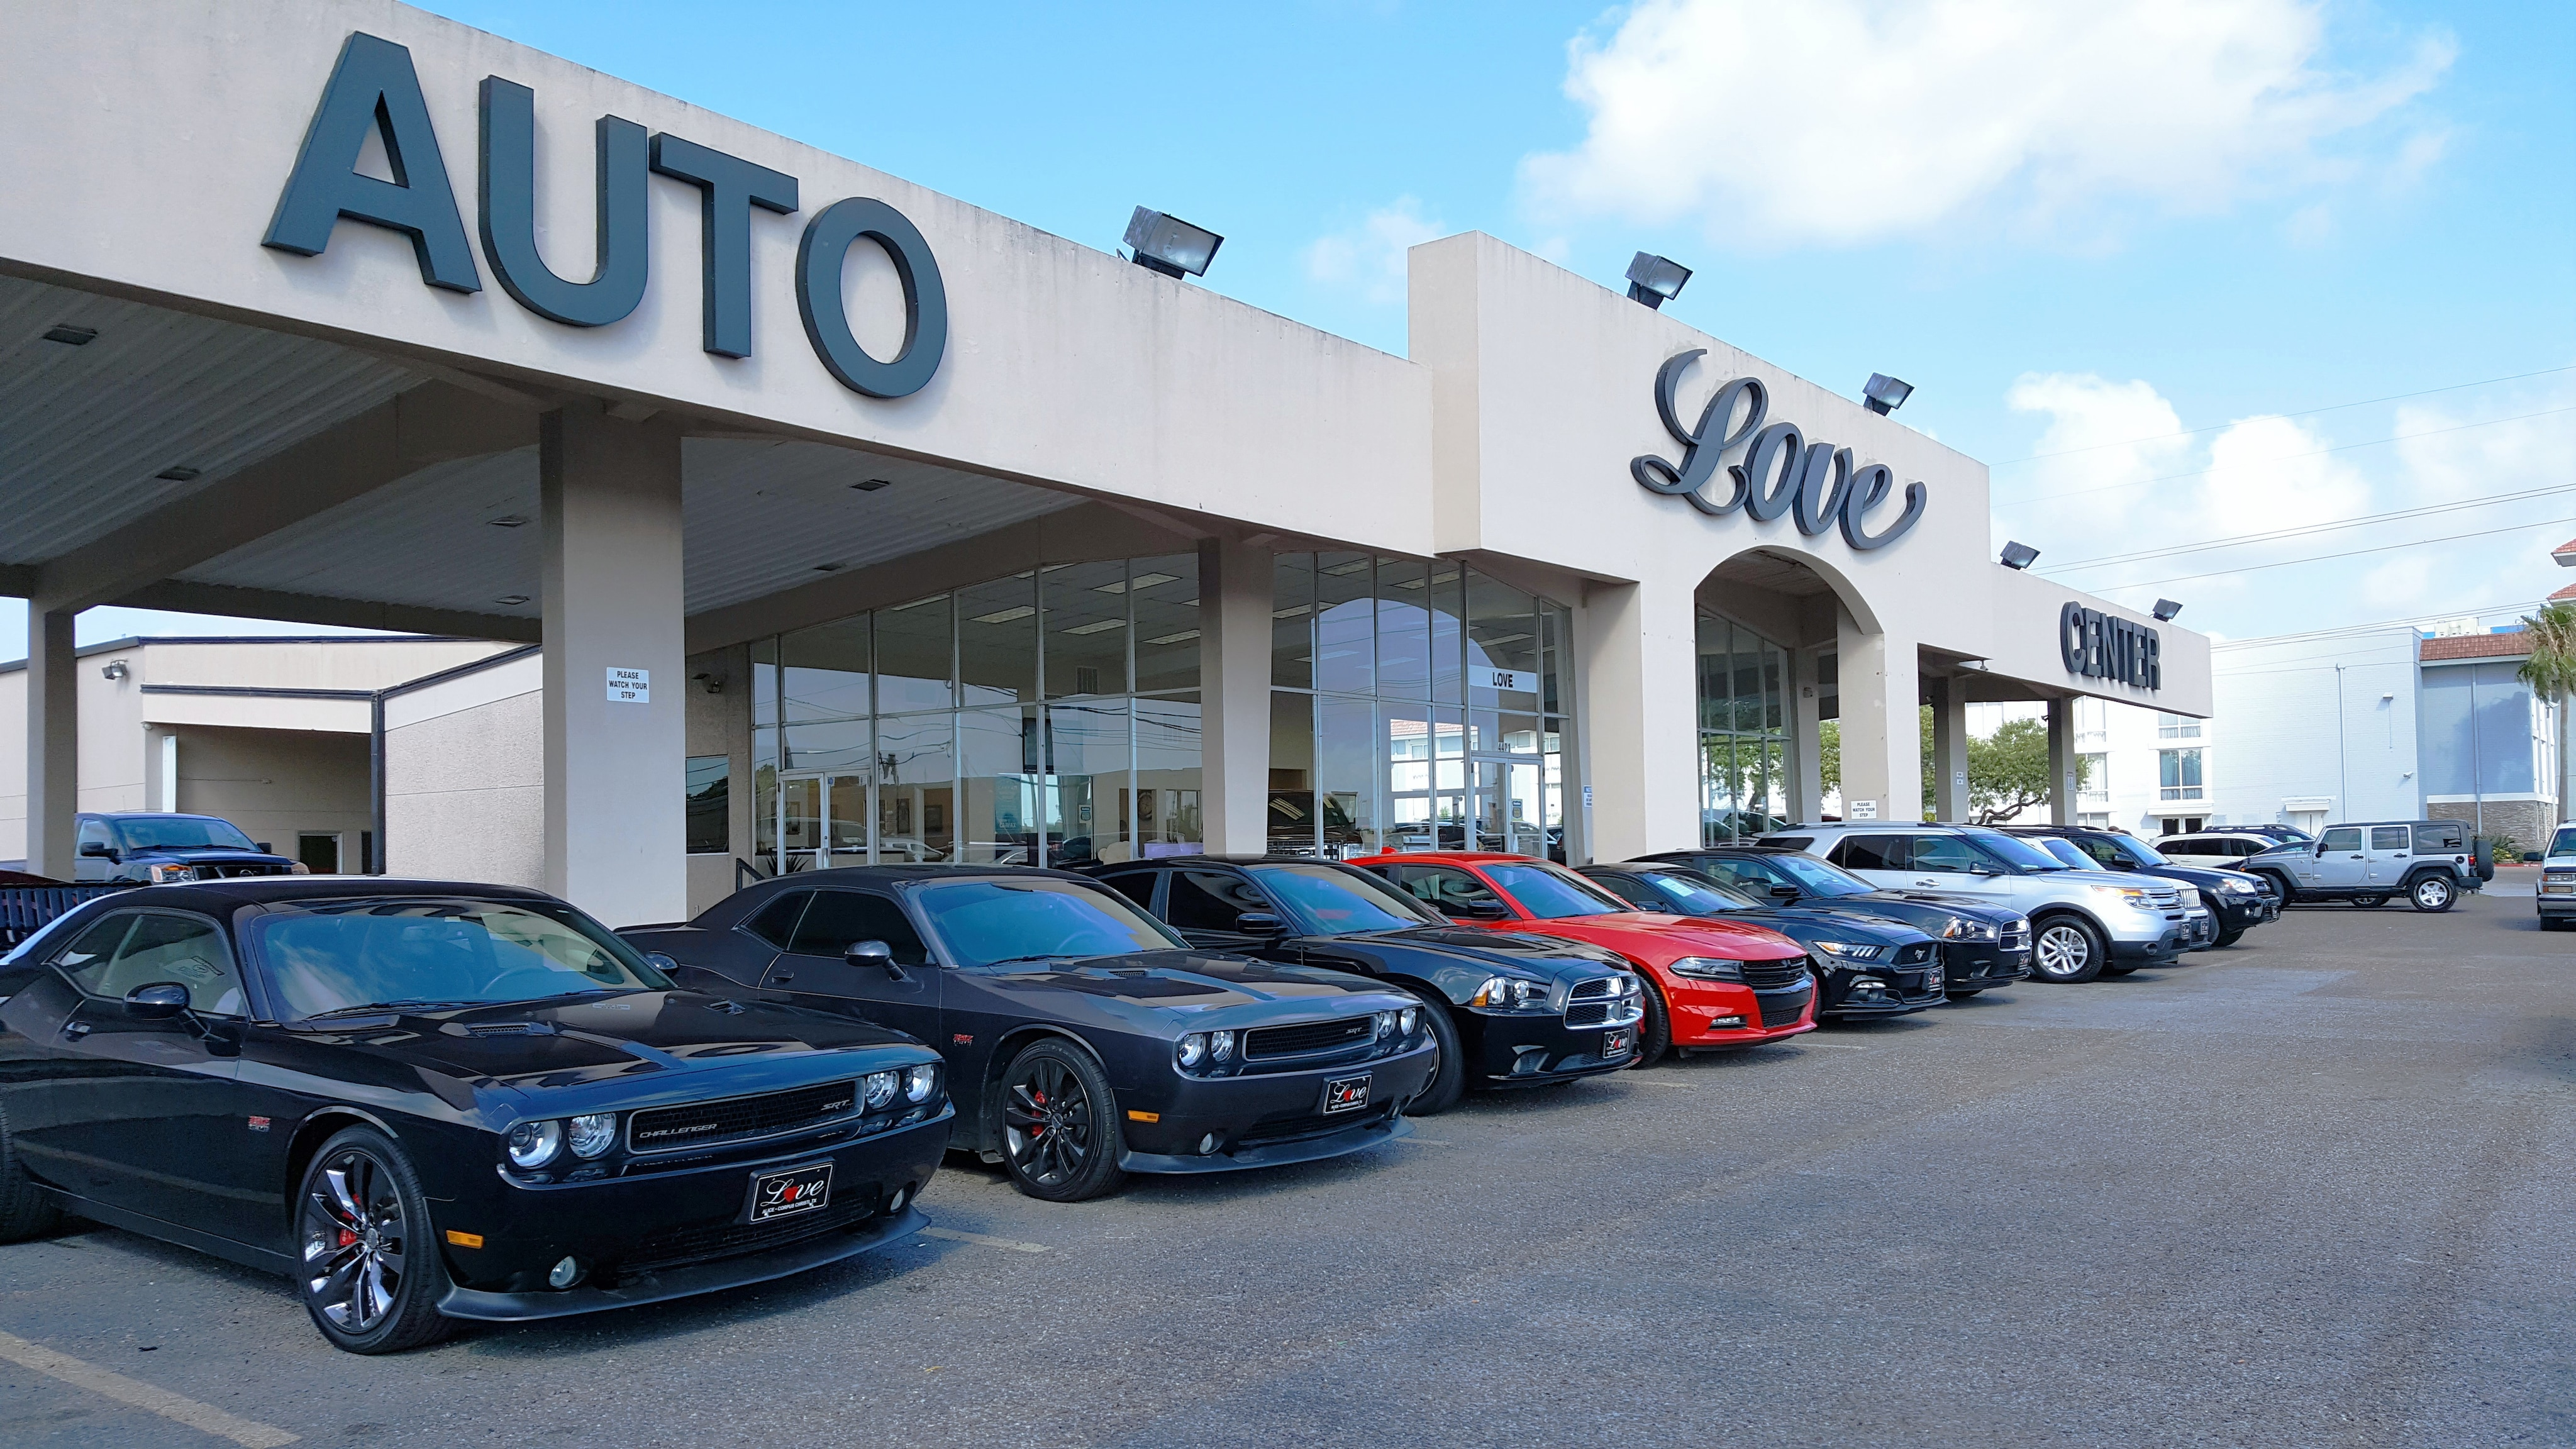 Pre Owned Cars Near Me >> Unique Used Car Dealerships In Corpus Christi   used cars